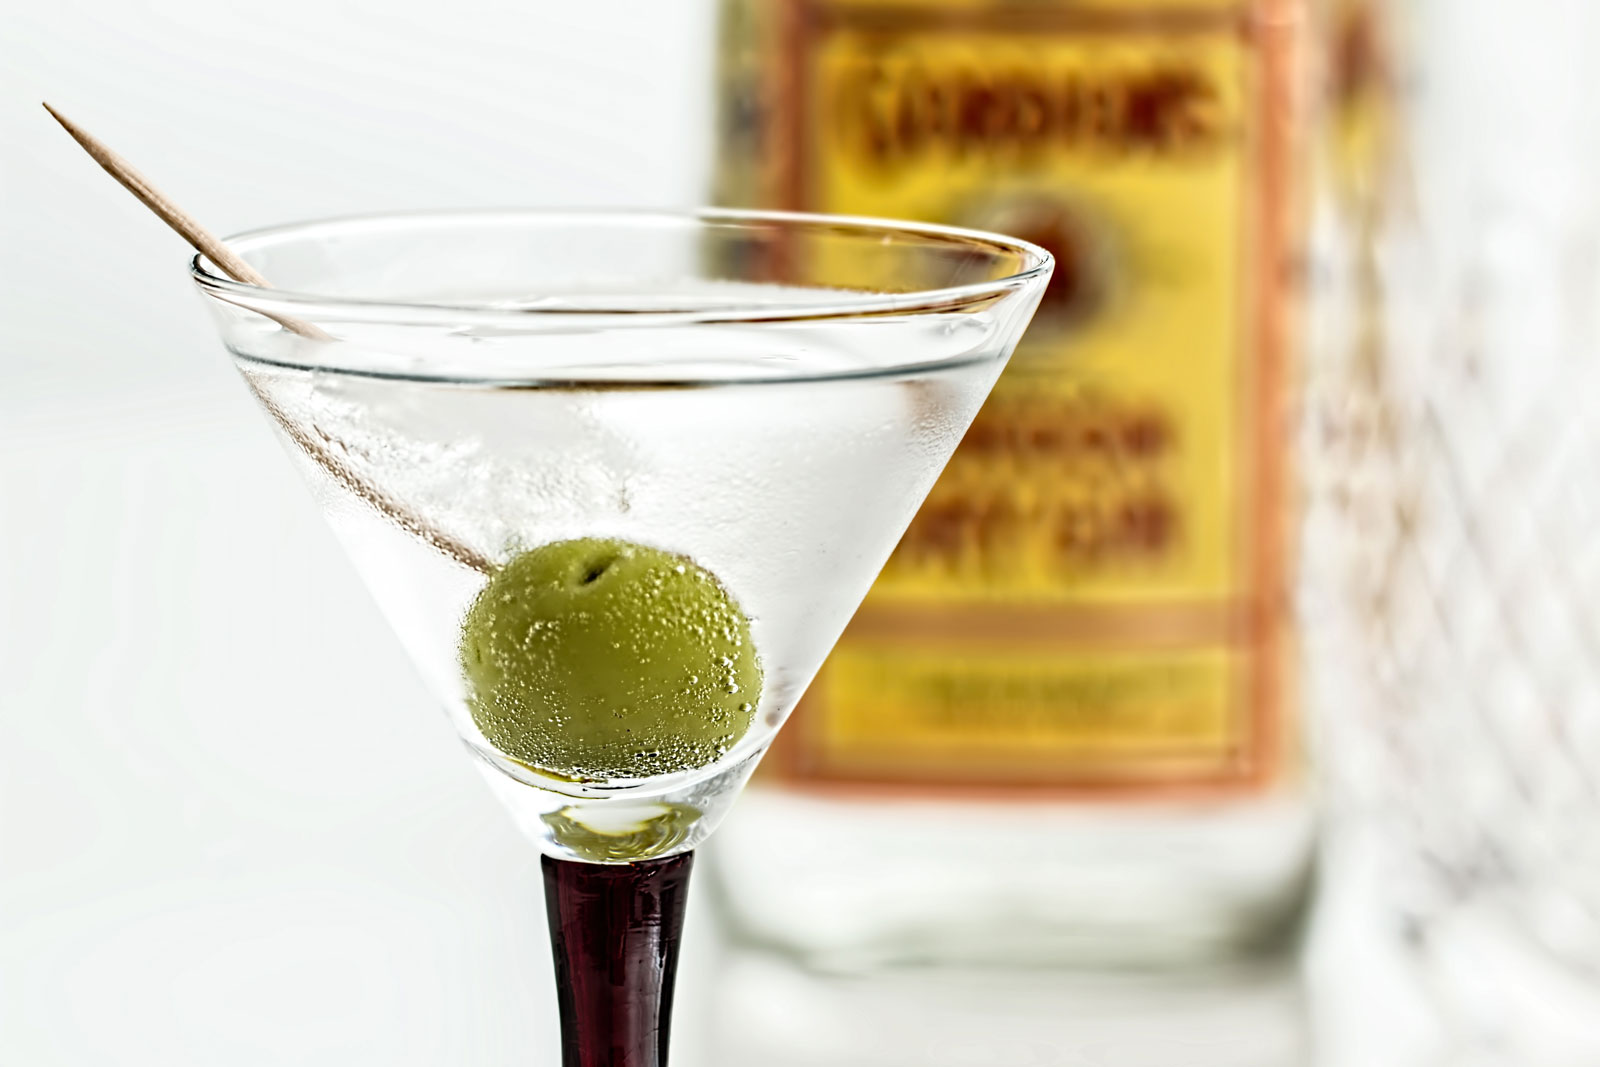 Dirty Martini   Healthy Happy Hour With These Vegetable Juice Cocktails